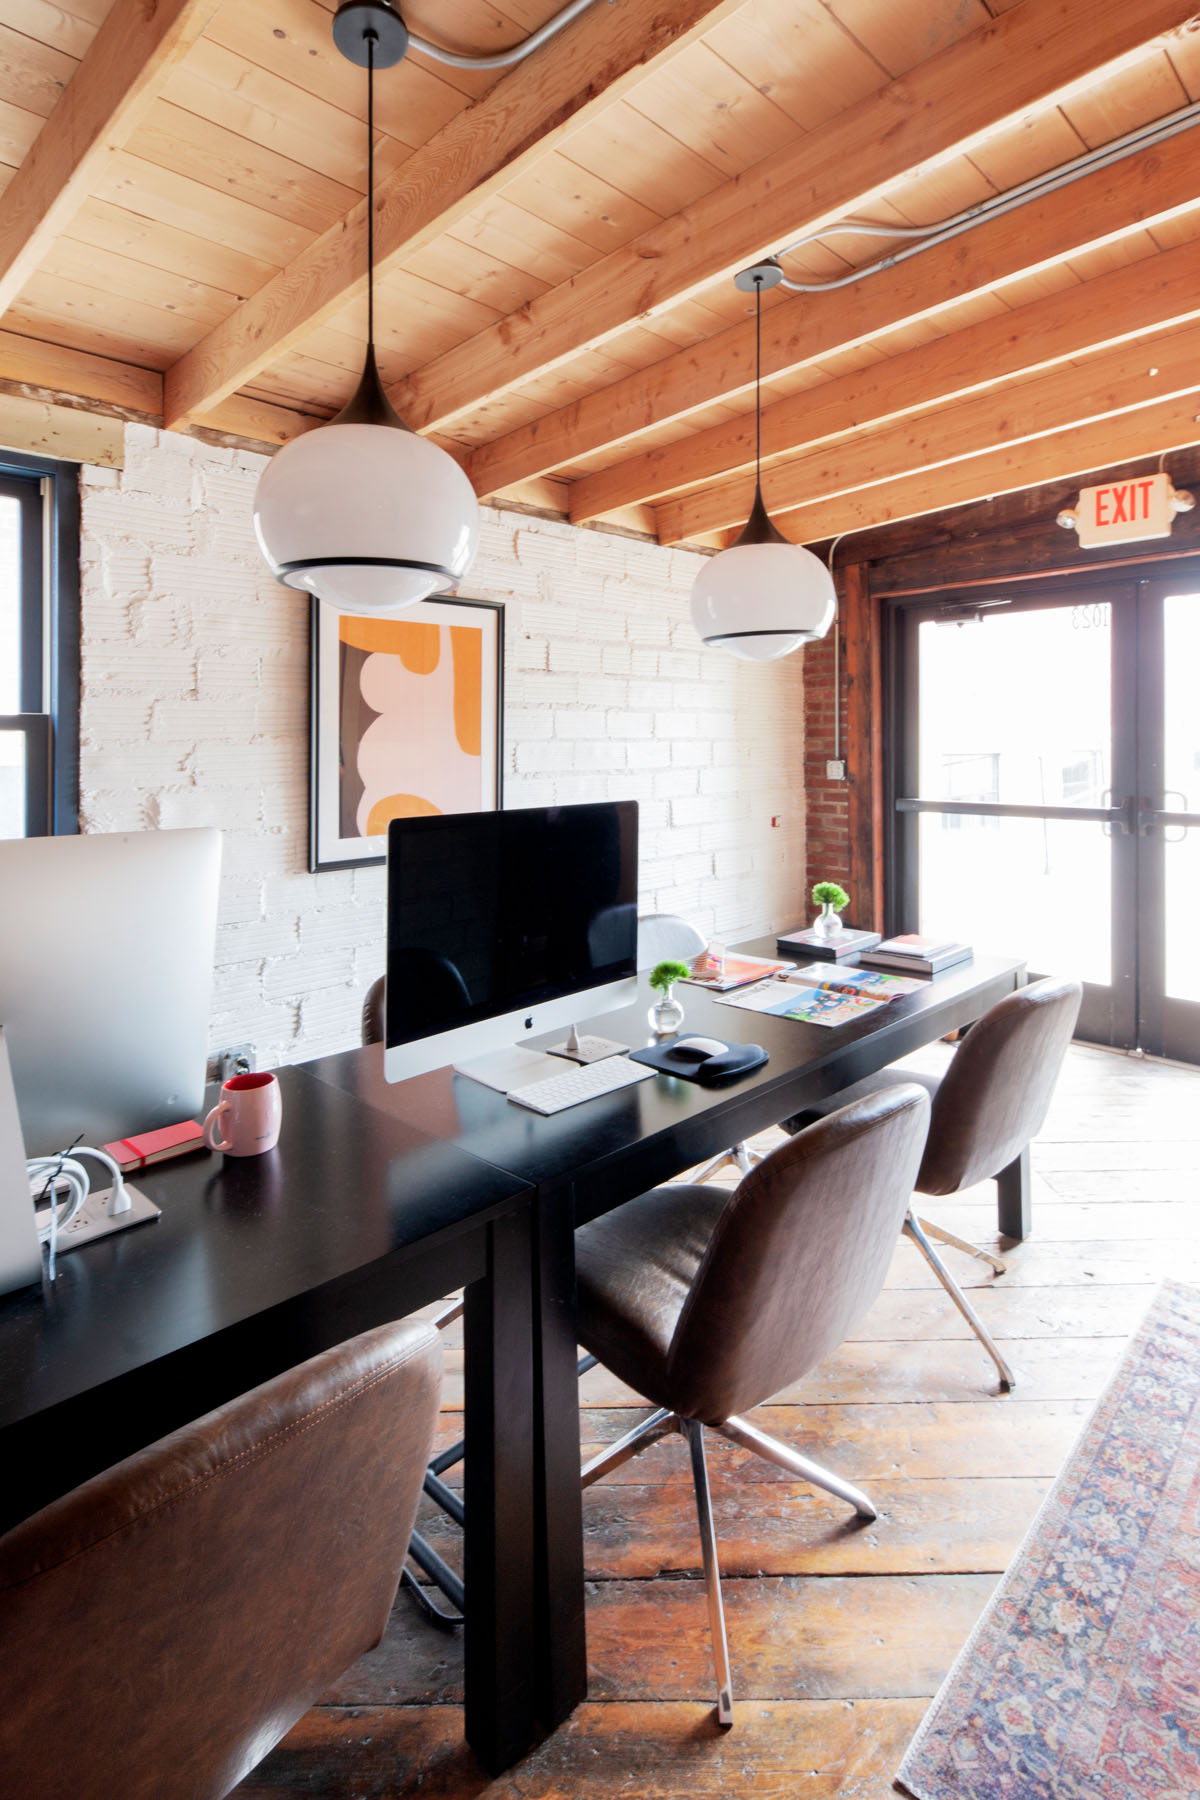 Hoot-Scout-And-Nimble-Edgy-Eclectic-Warm-Tones-Office60.jpg